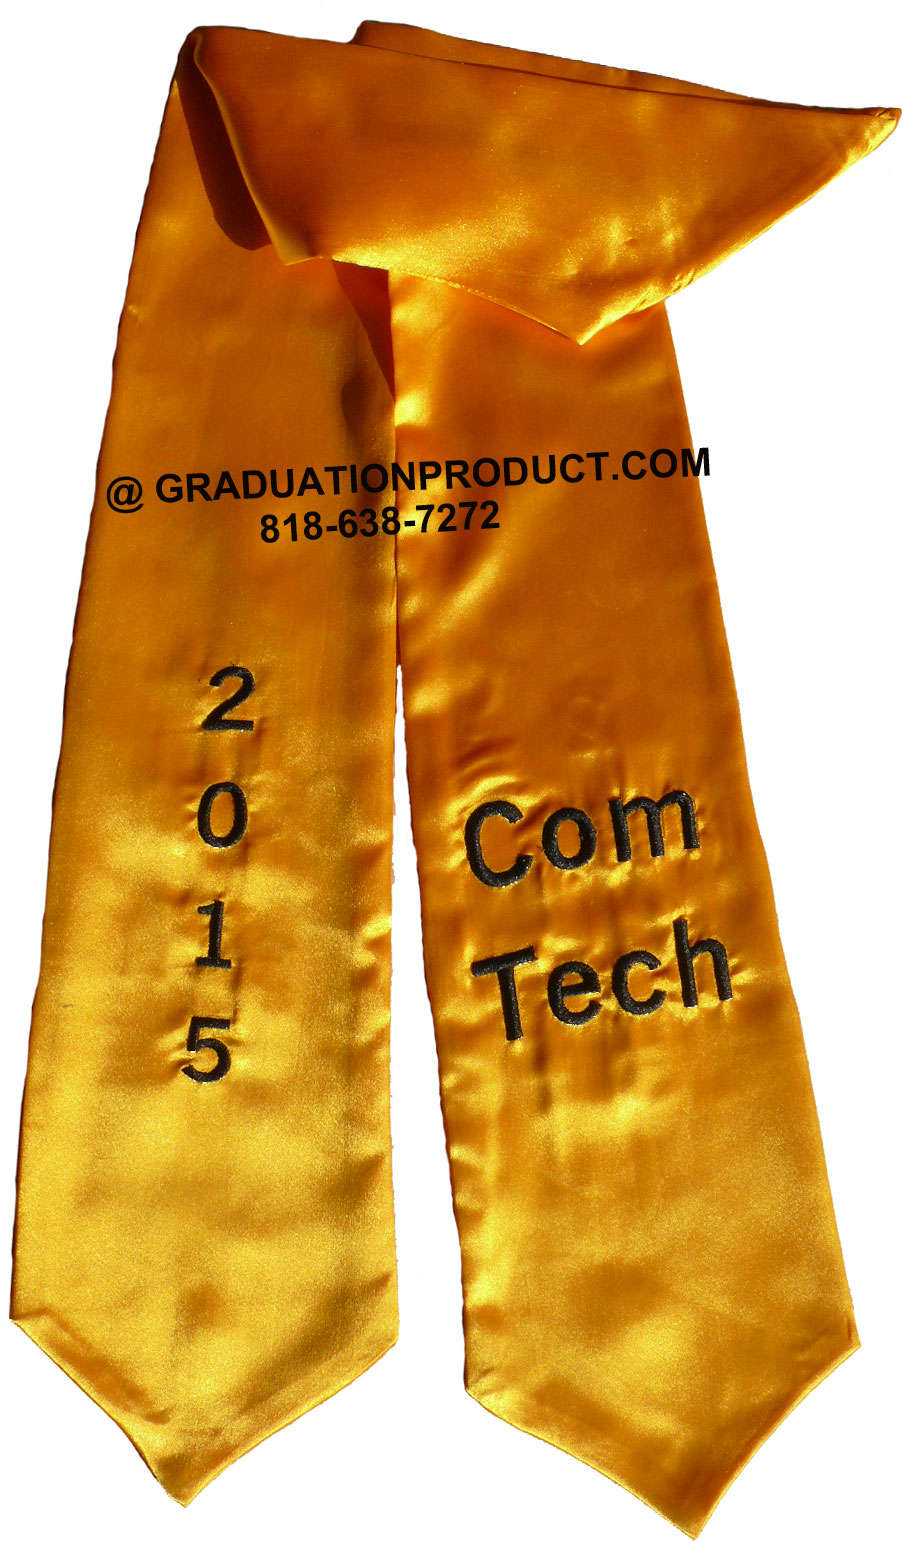 Com Tech Gold Graduation Stole